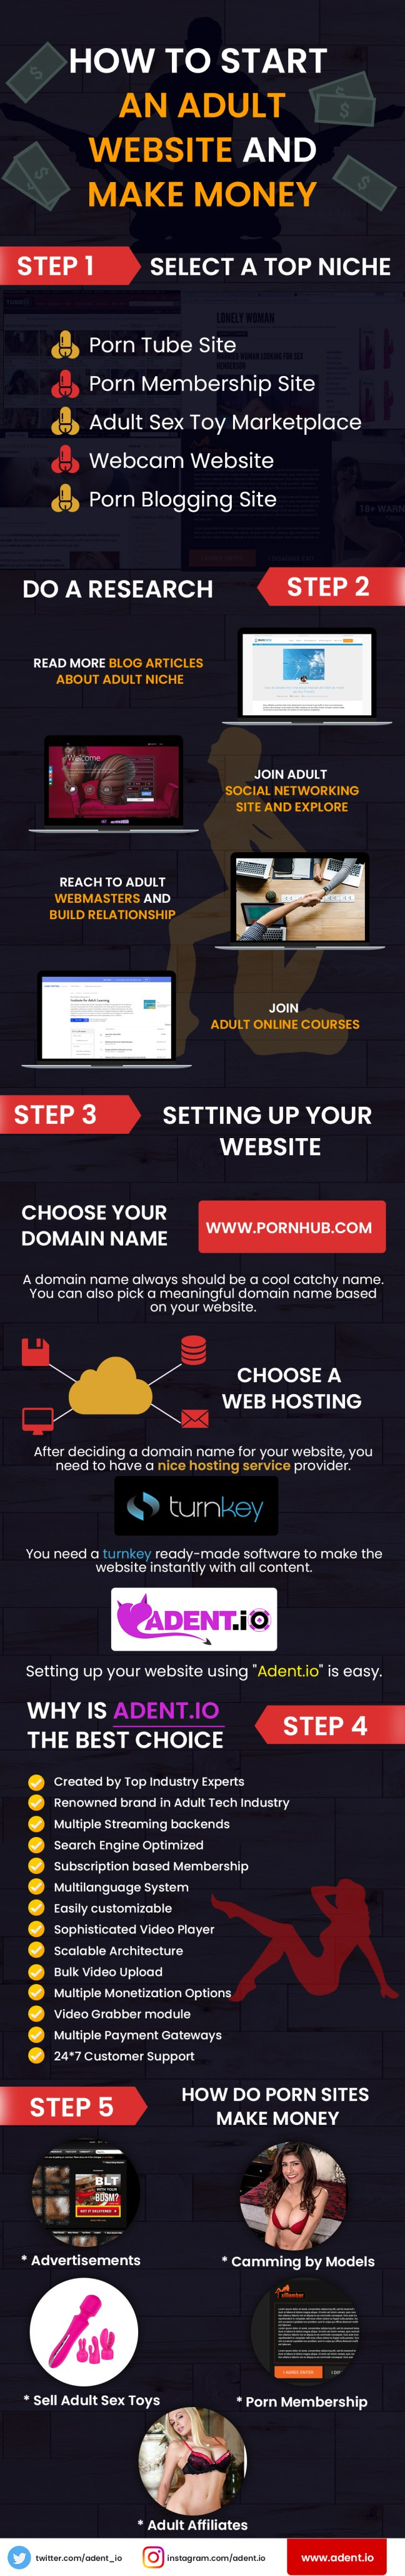 how to start an adult site and make money infographic